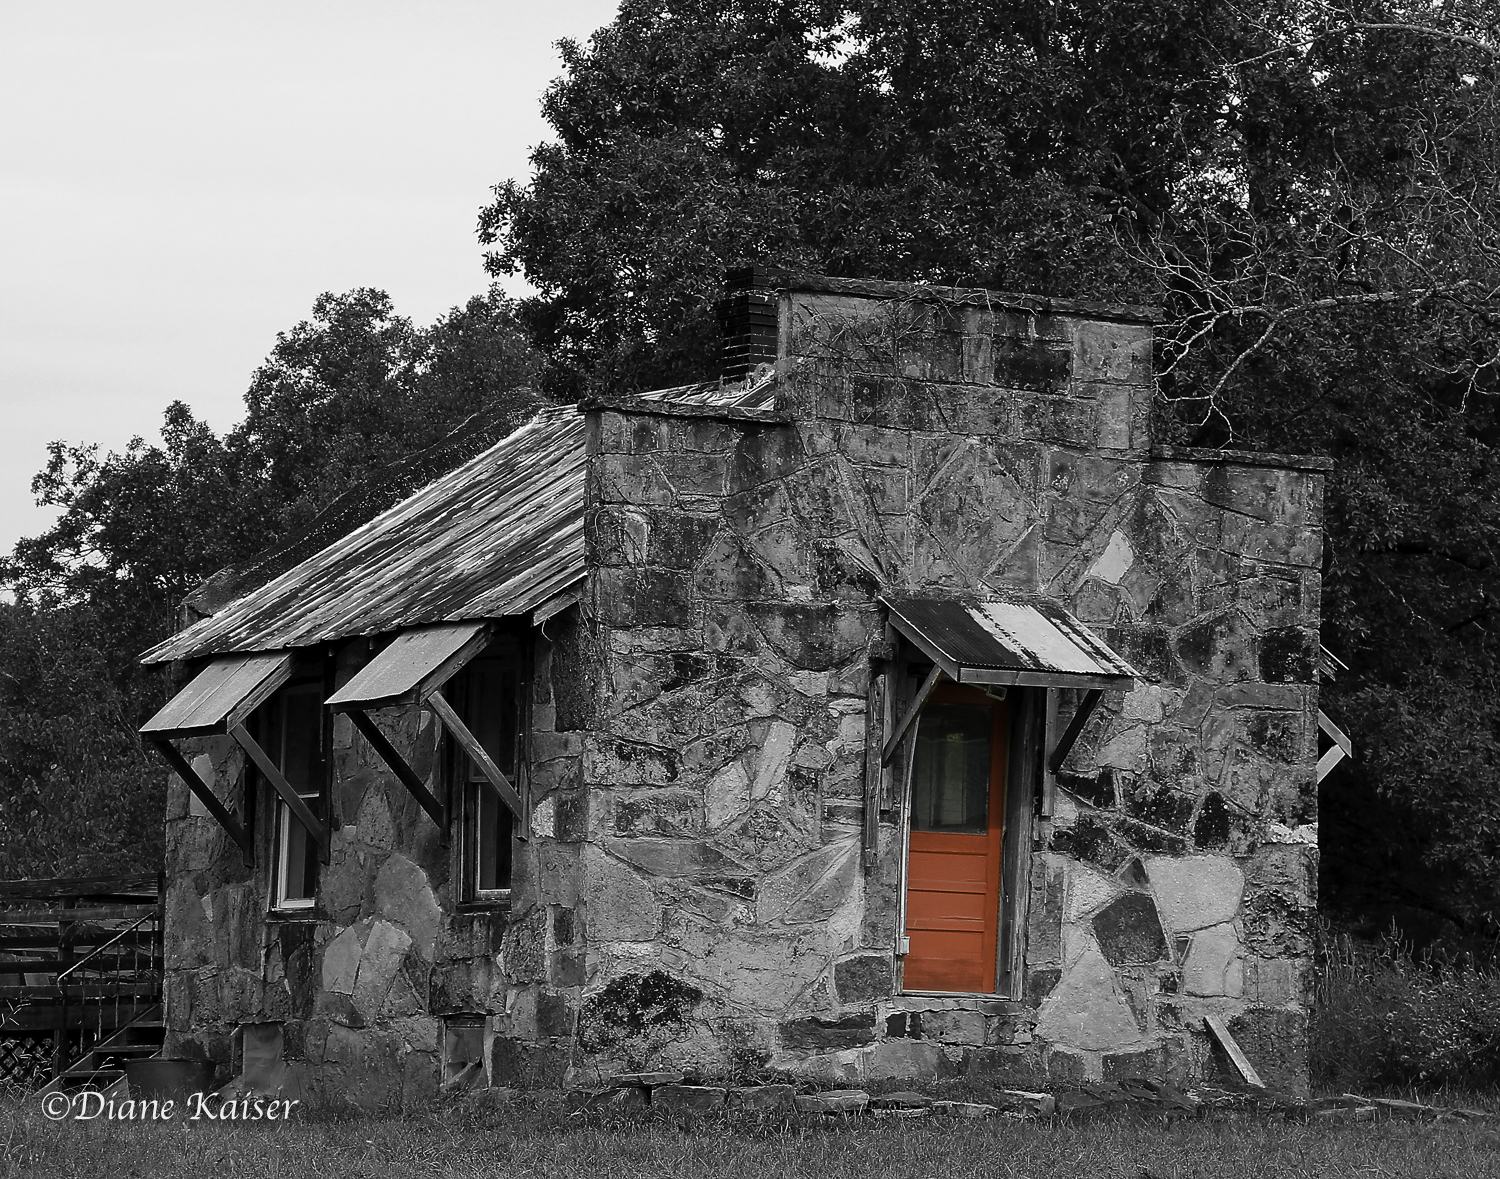 I put the color version of this image in Shared Photos. Diane turned it on its heels and just left the red door. I like it!